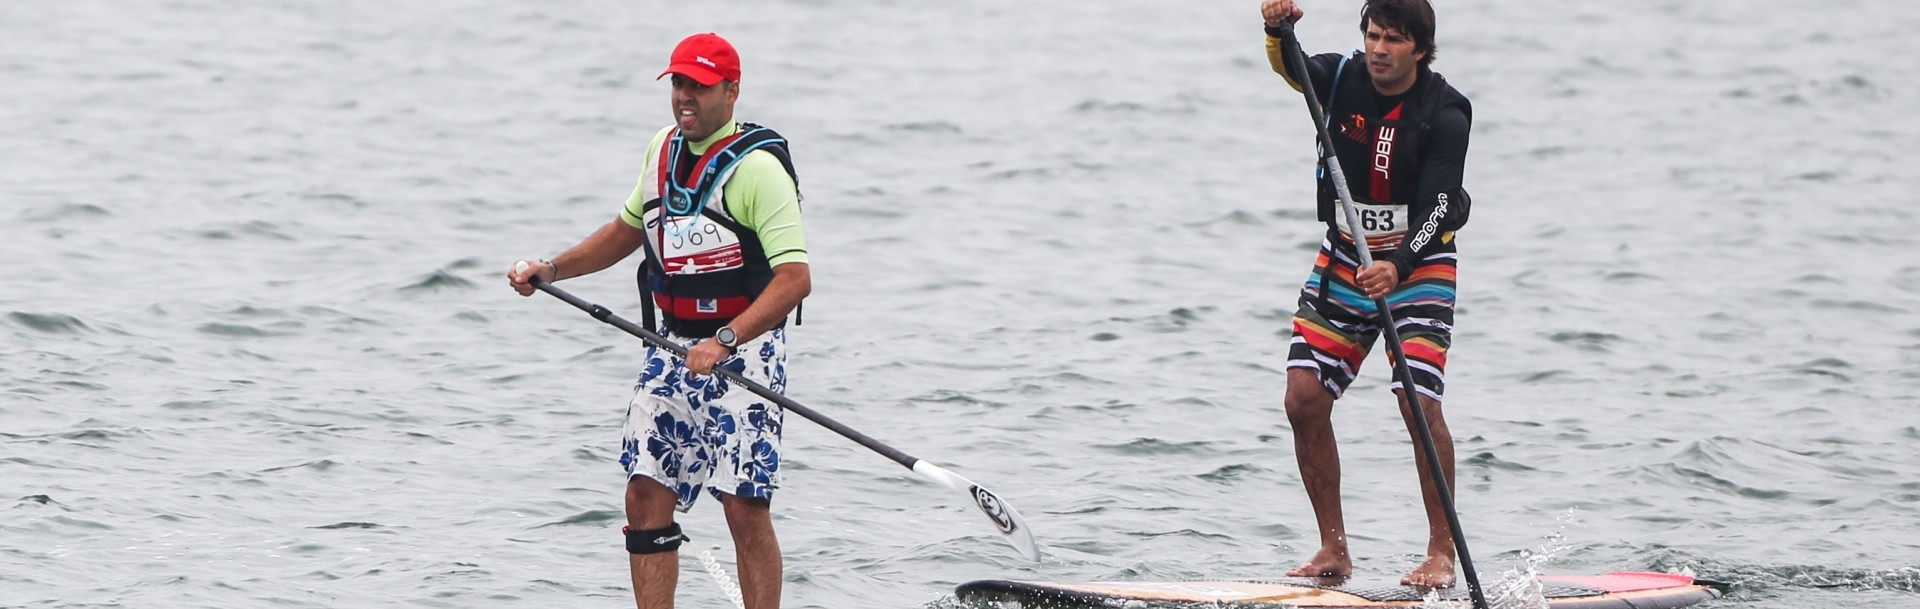 ICF deny reports that Stand Up Paddling World Championships facing legal challenge